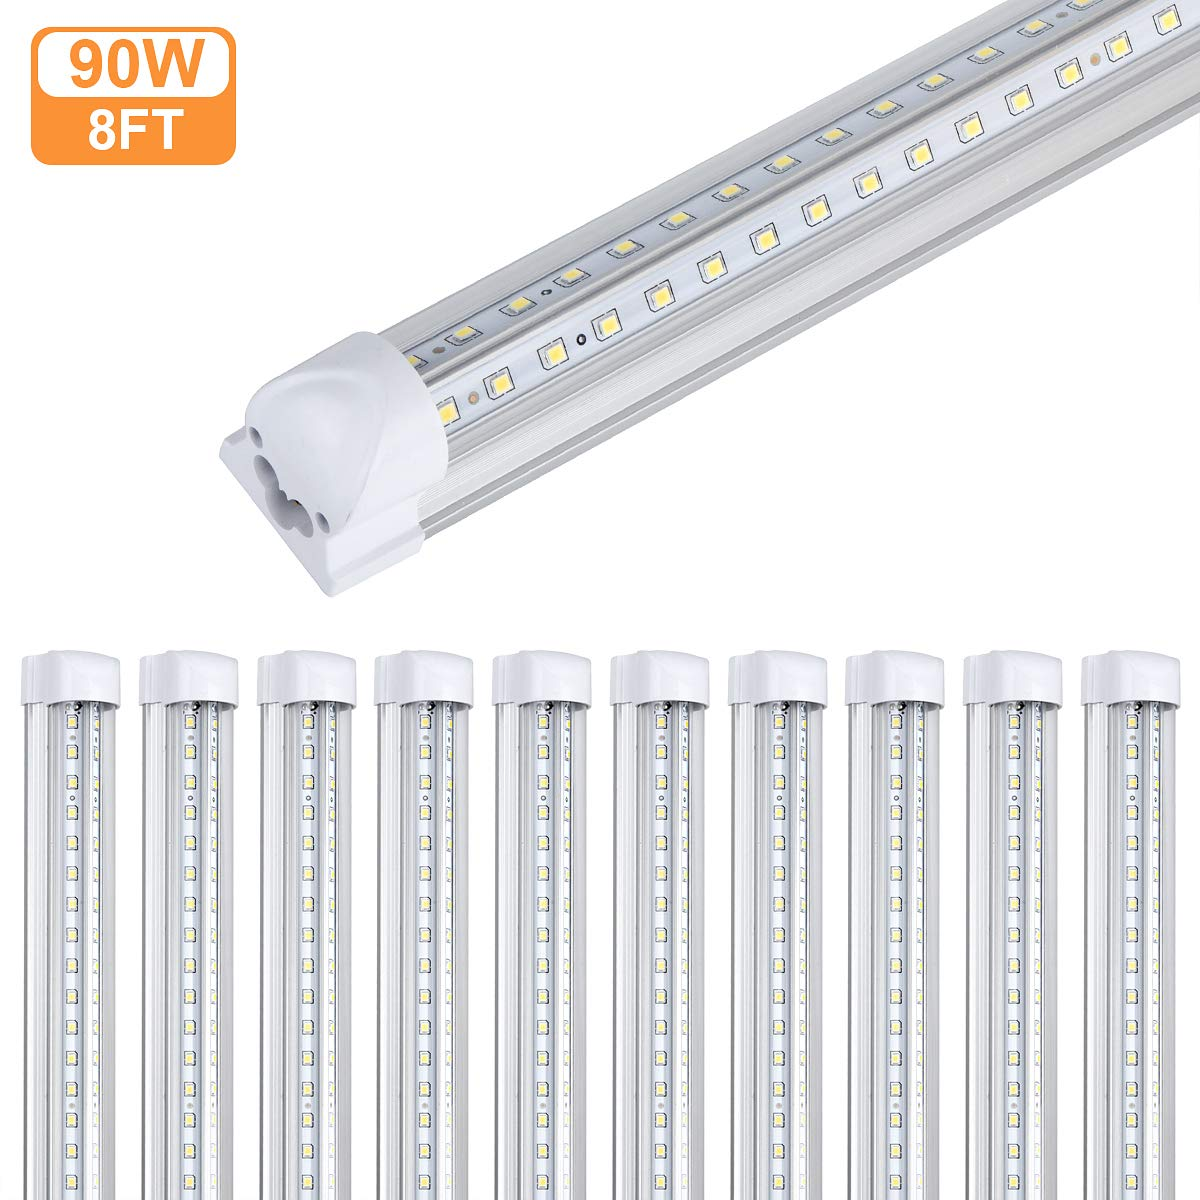 10Pack 8Ft LED Shop Light Fixture,90W 10000 Lumens 5000K Daylight White, Clear Cover,V Shape T8 Integrated 8 Foot Led Tube Light for Cooler,Garage,Warehouse,Plug and Play by GAYUSAN